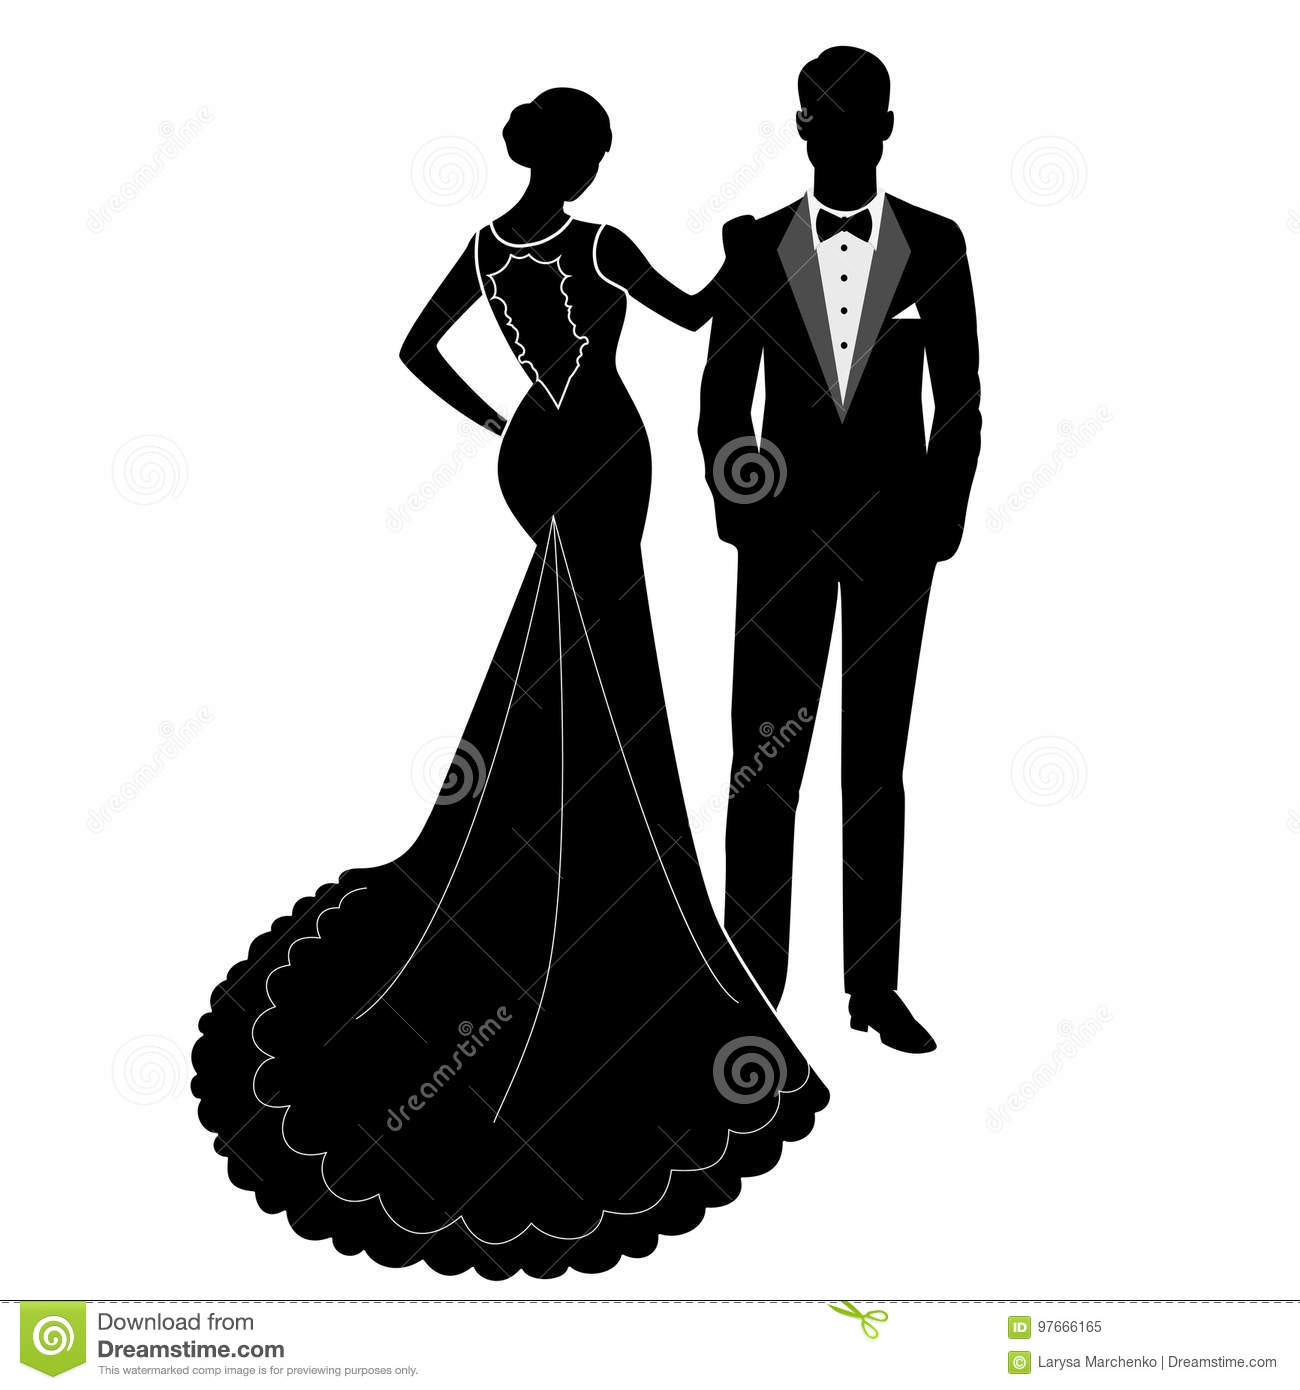 The Bride And Groom Silhouette. Stock Vector